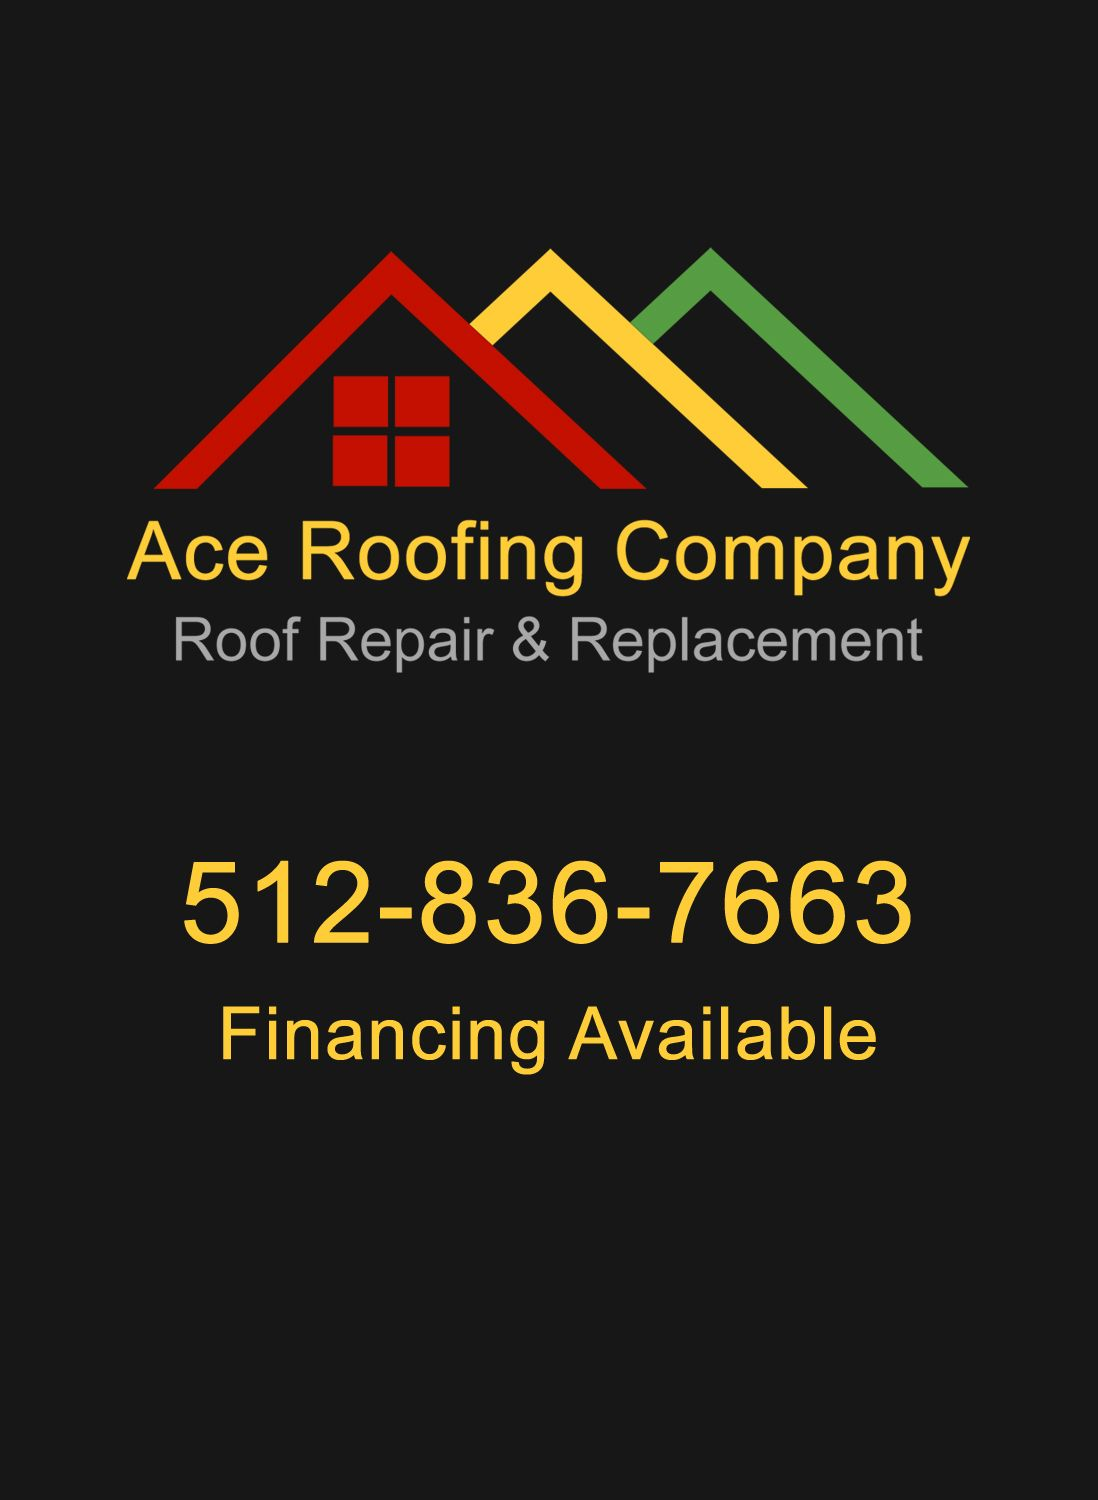 Ace Roofing Company Austin TX Celebrates Earning Top